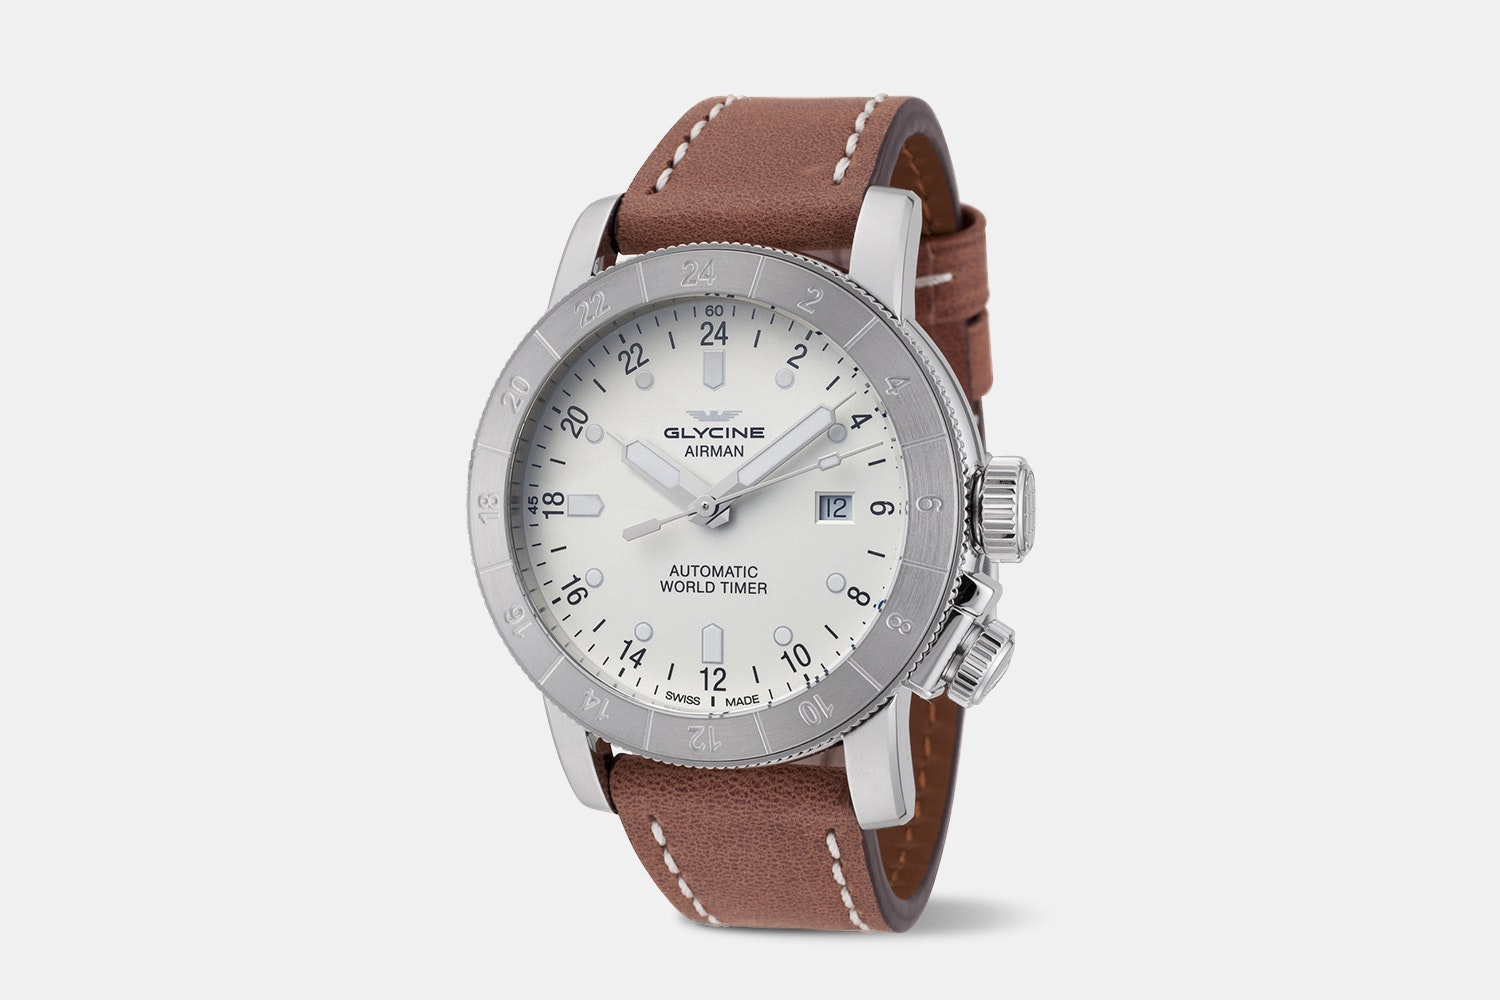 Airman 44 - GL0138 | 44 mm, White Dial, Brown Leather Strap